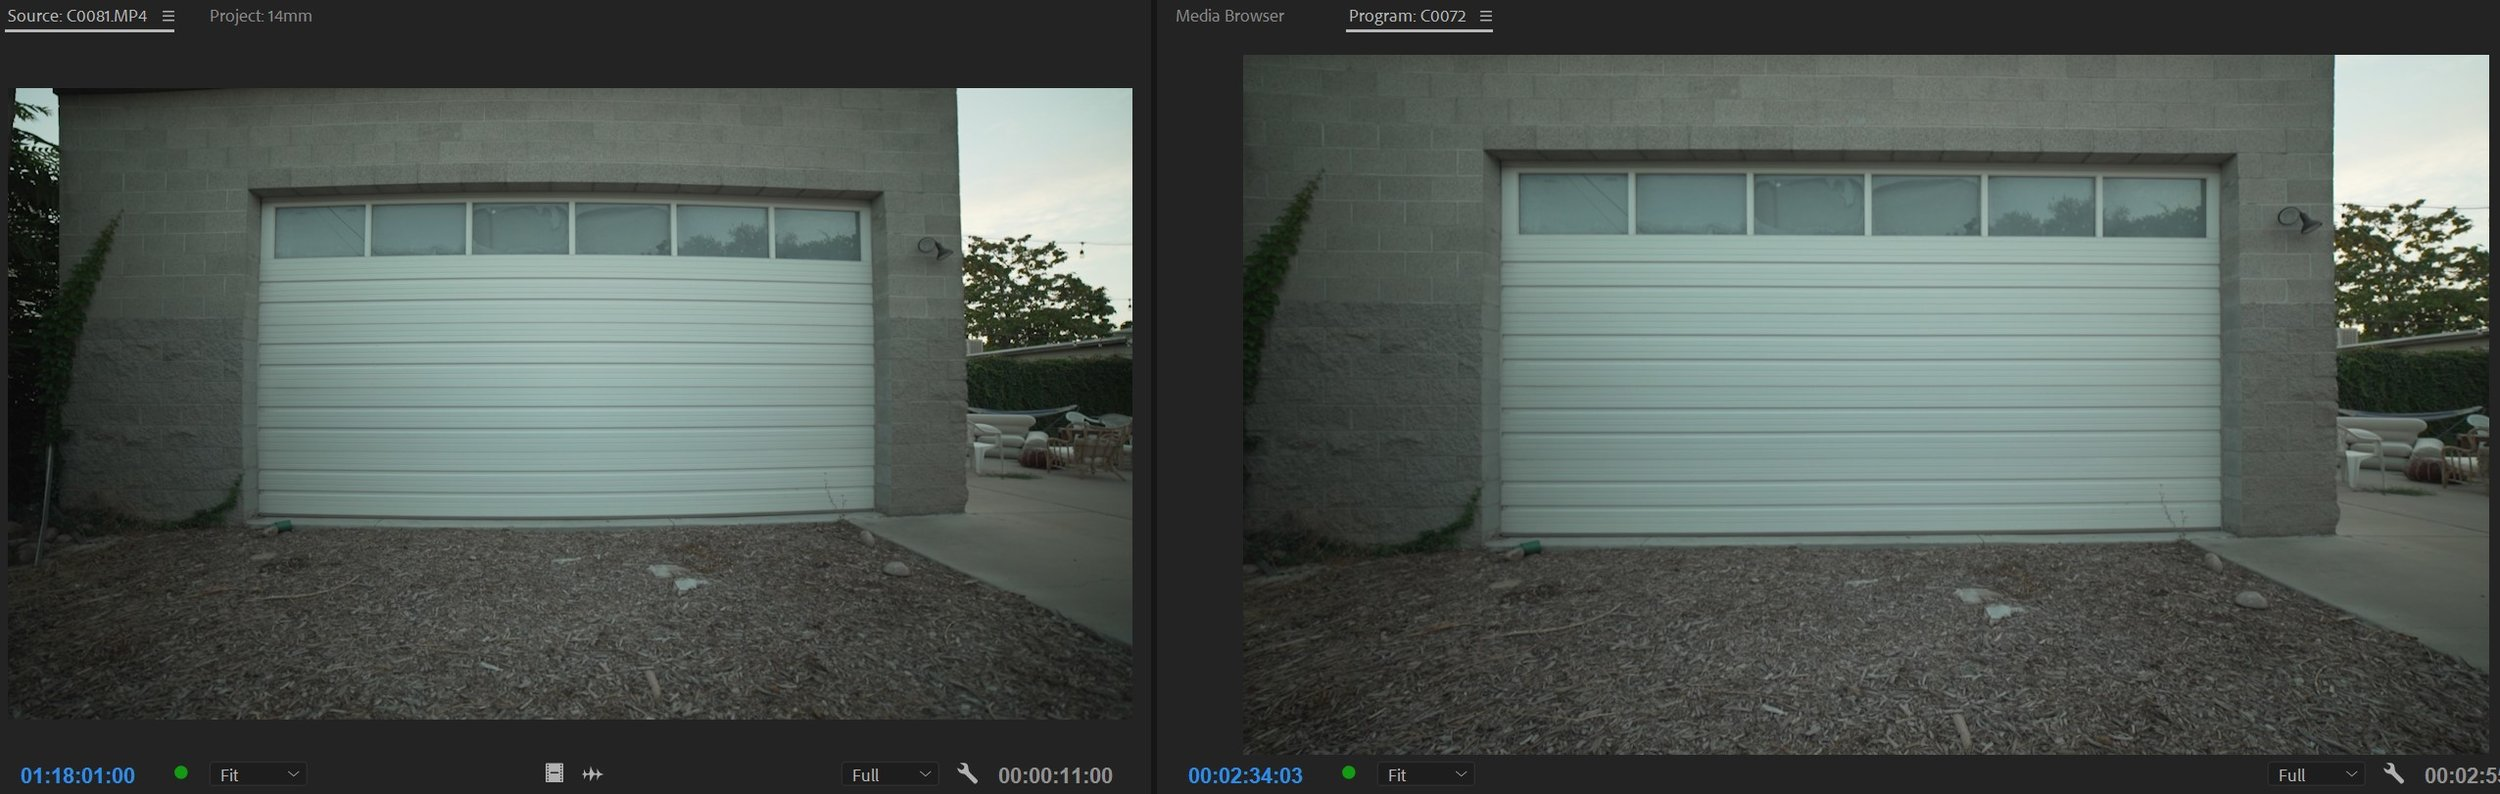 Ungraded . Left: Before. Right: After.